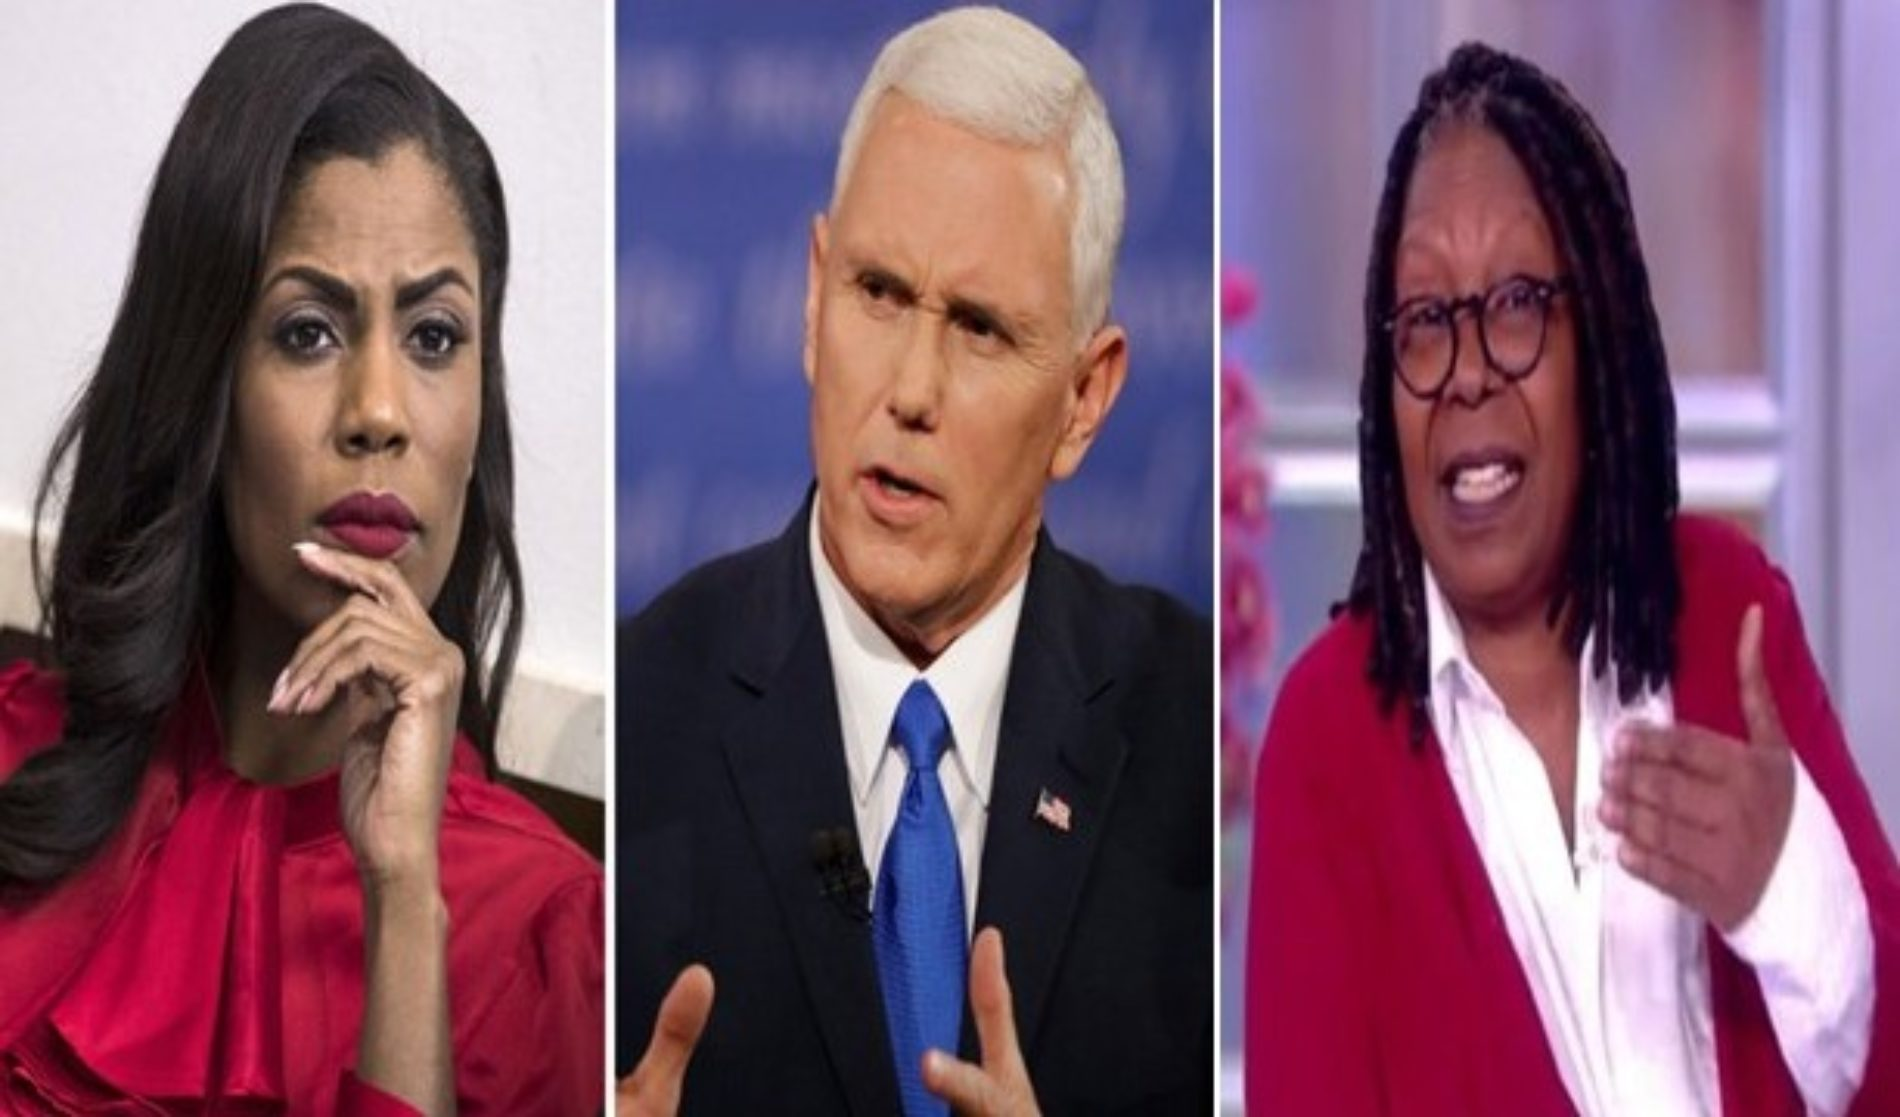 Former White House staffer Omarosa slams VP Mike Pence as worse than Trump, Whoopi Goldberg compares him to Nazi